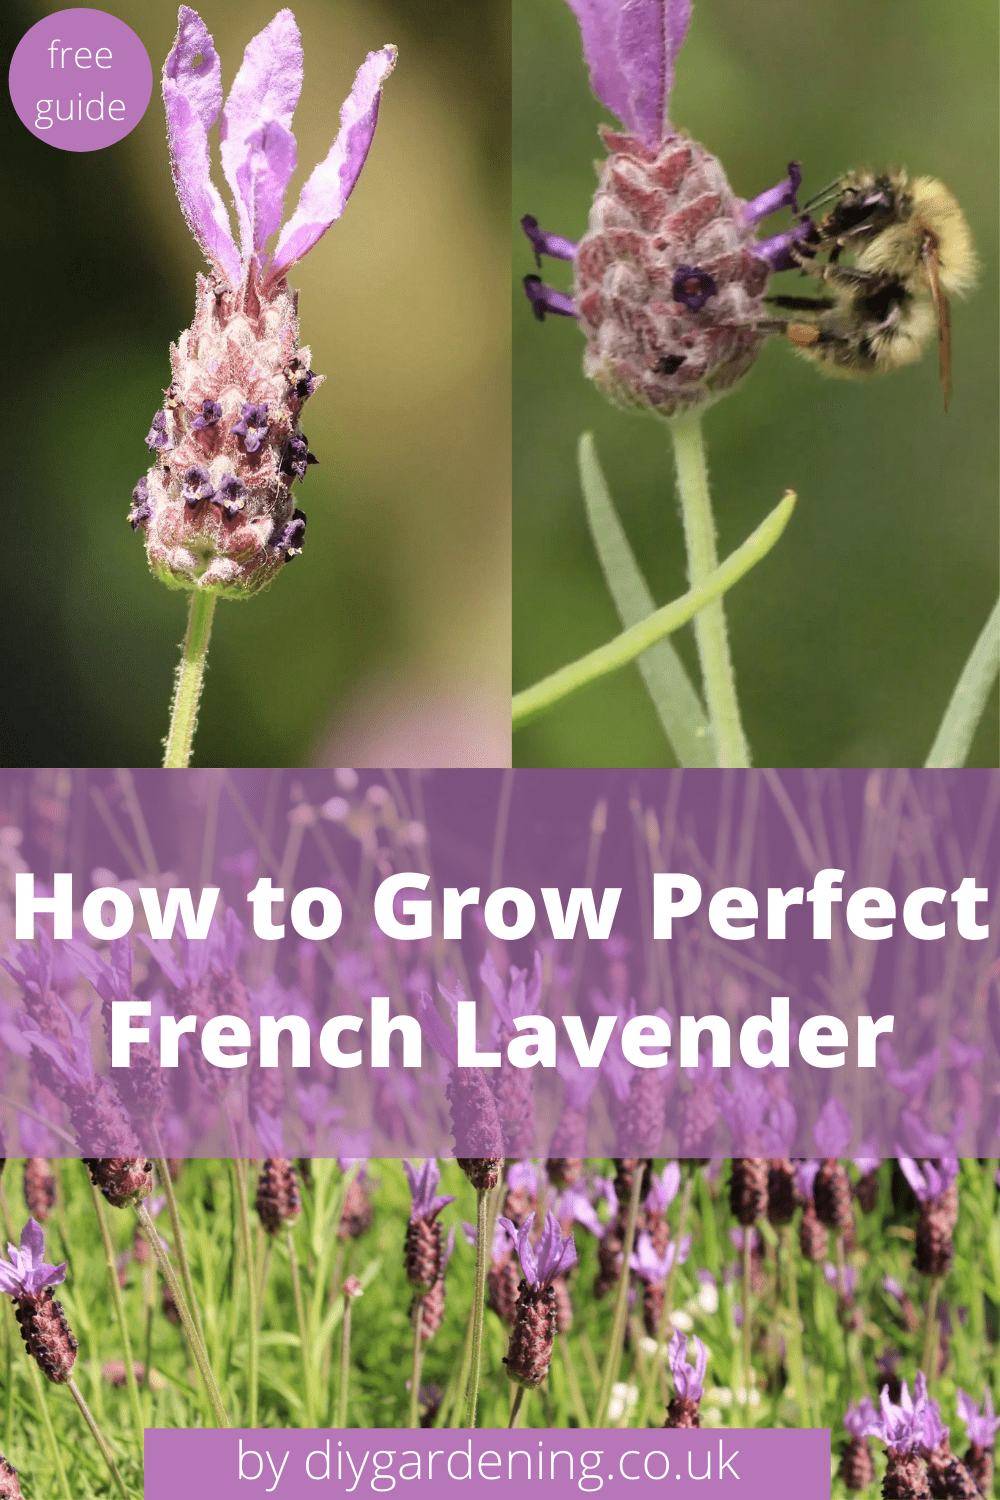 How to grow perfect French lavender